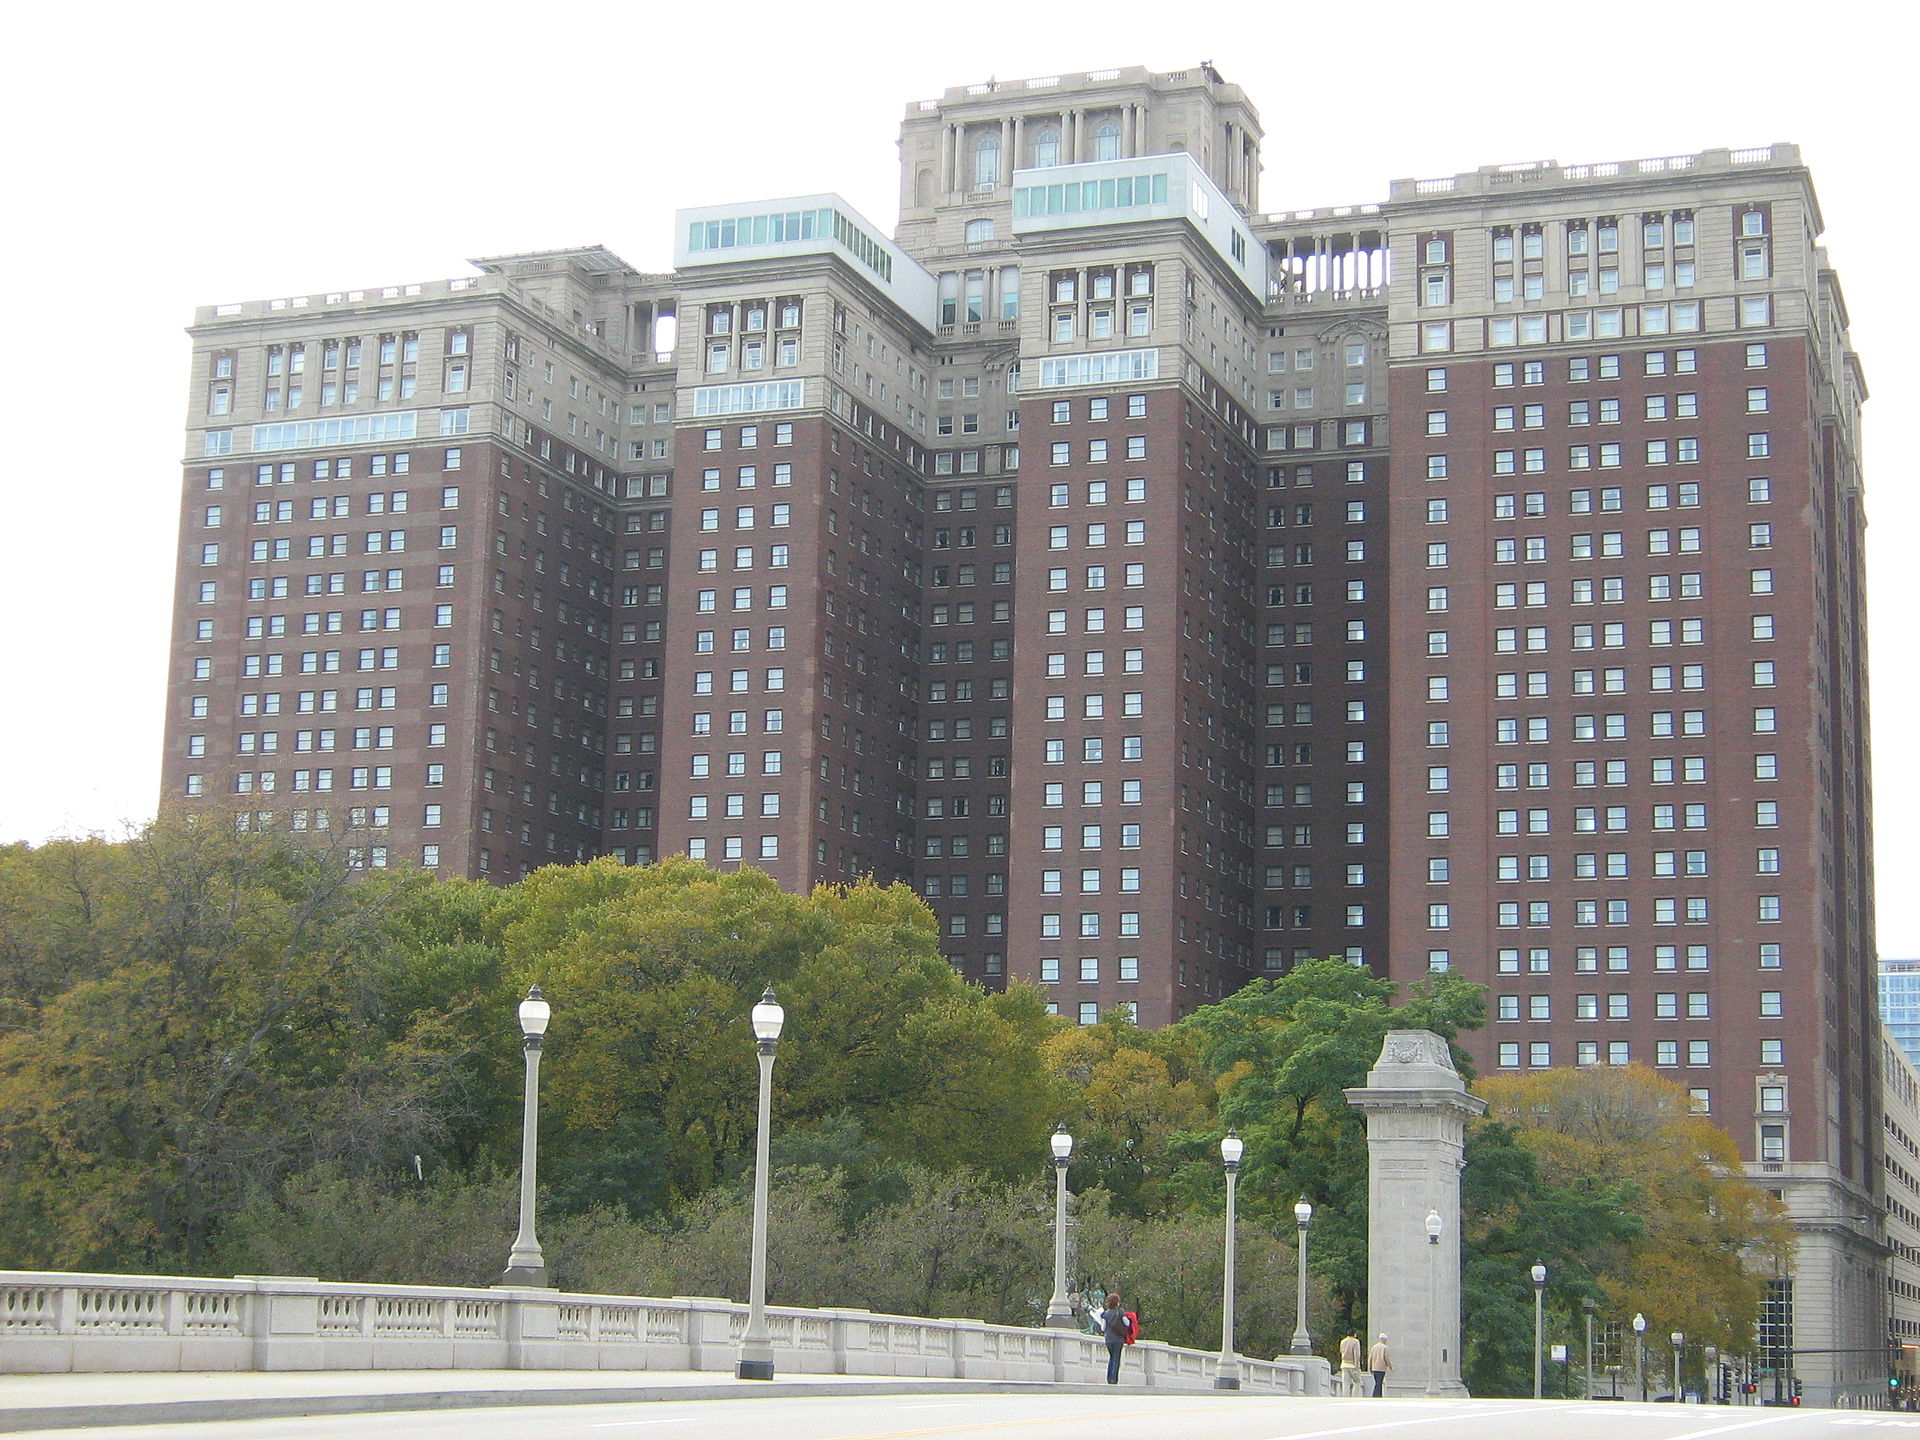 Hilton chicago wikipedia for Chicago lodging